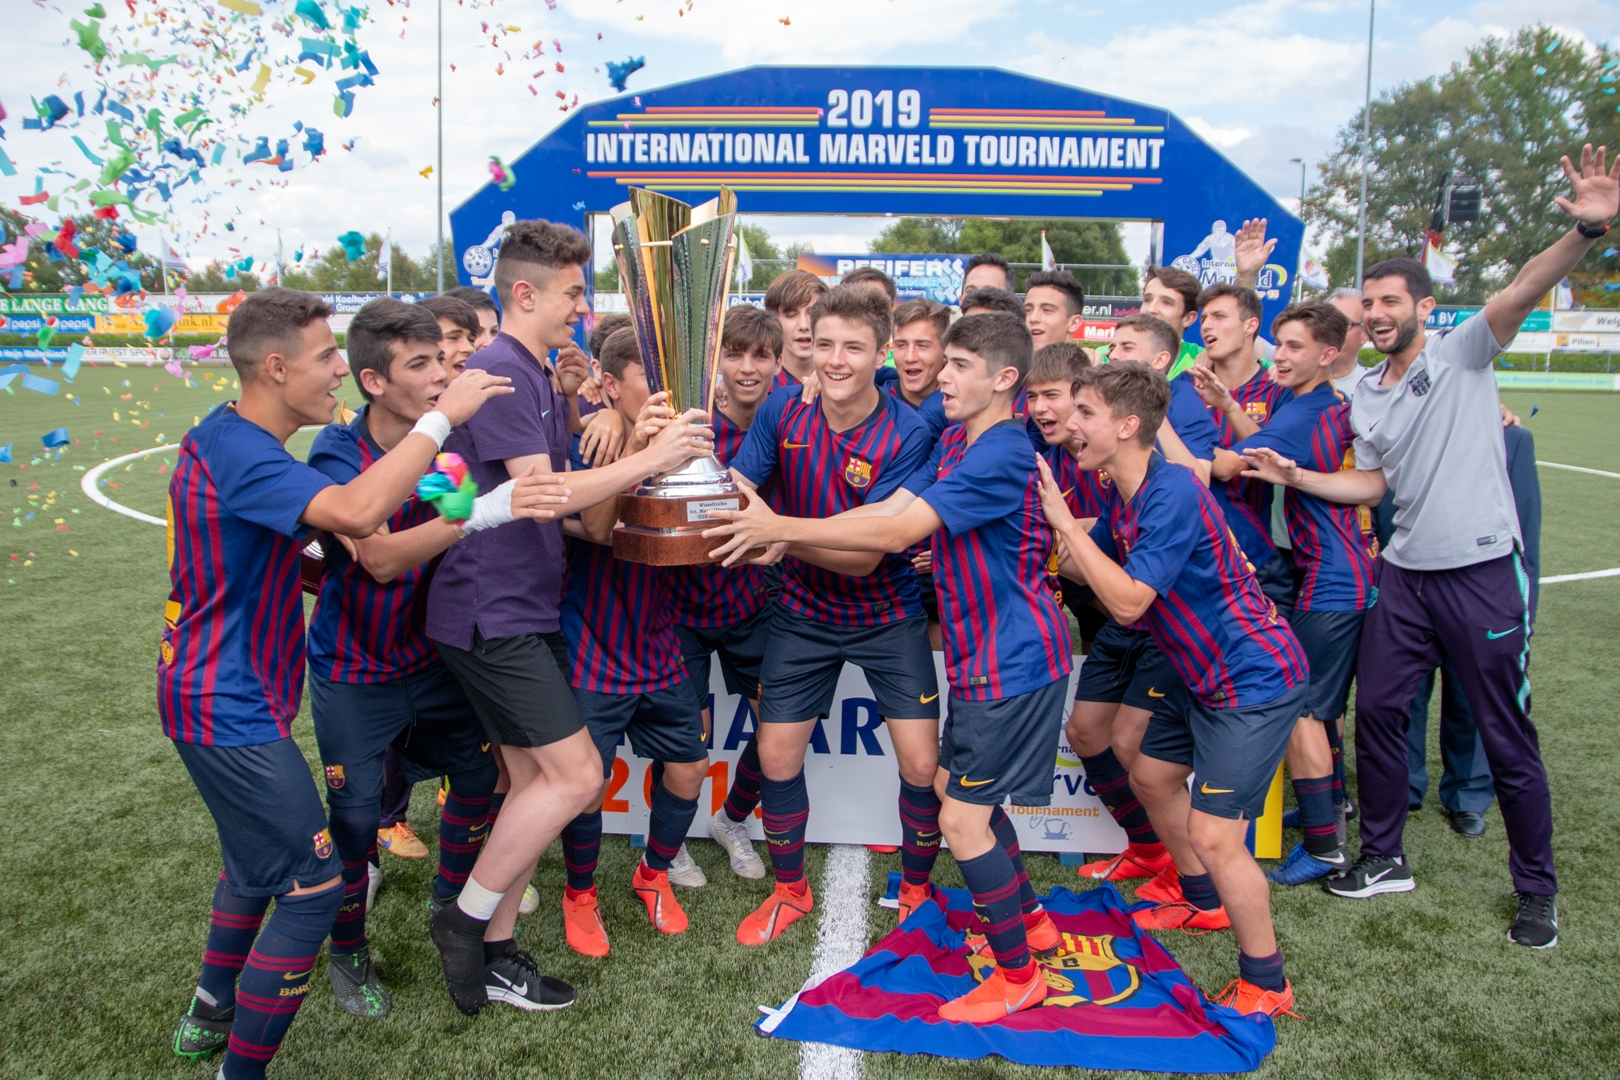 Marveld Tournament 2019 - Winner FC Barcelona